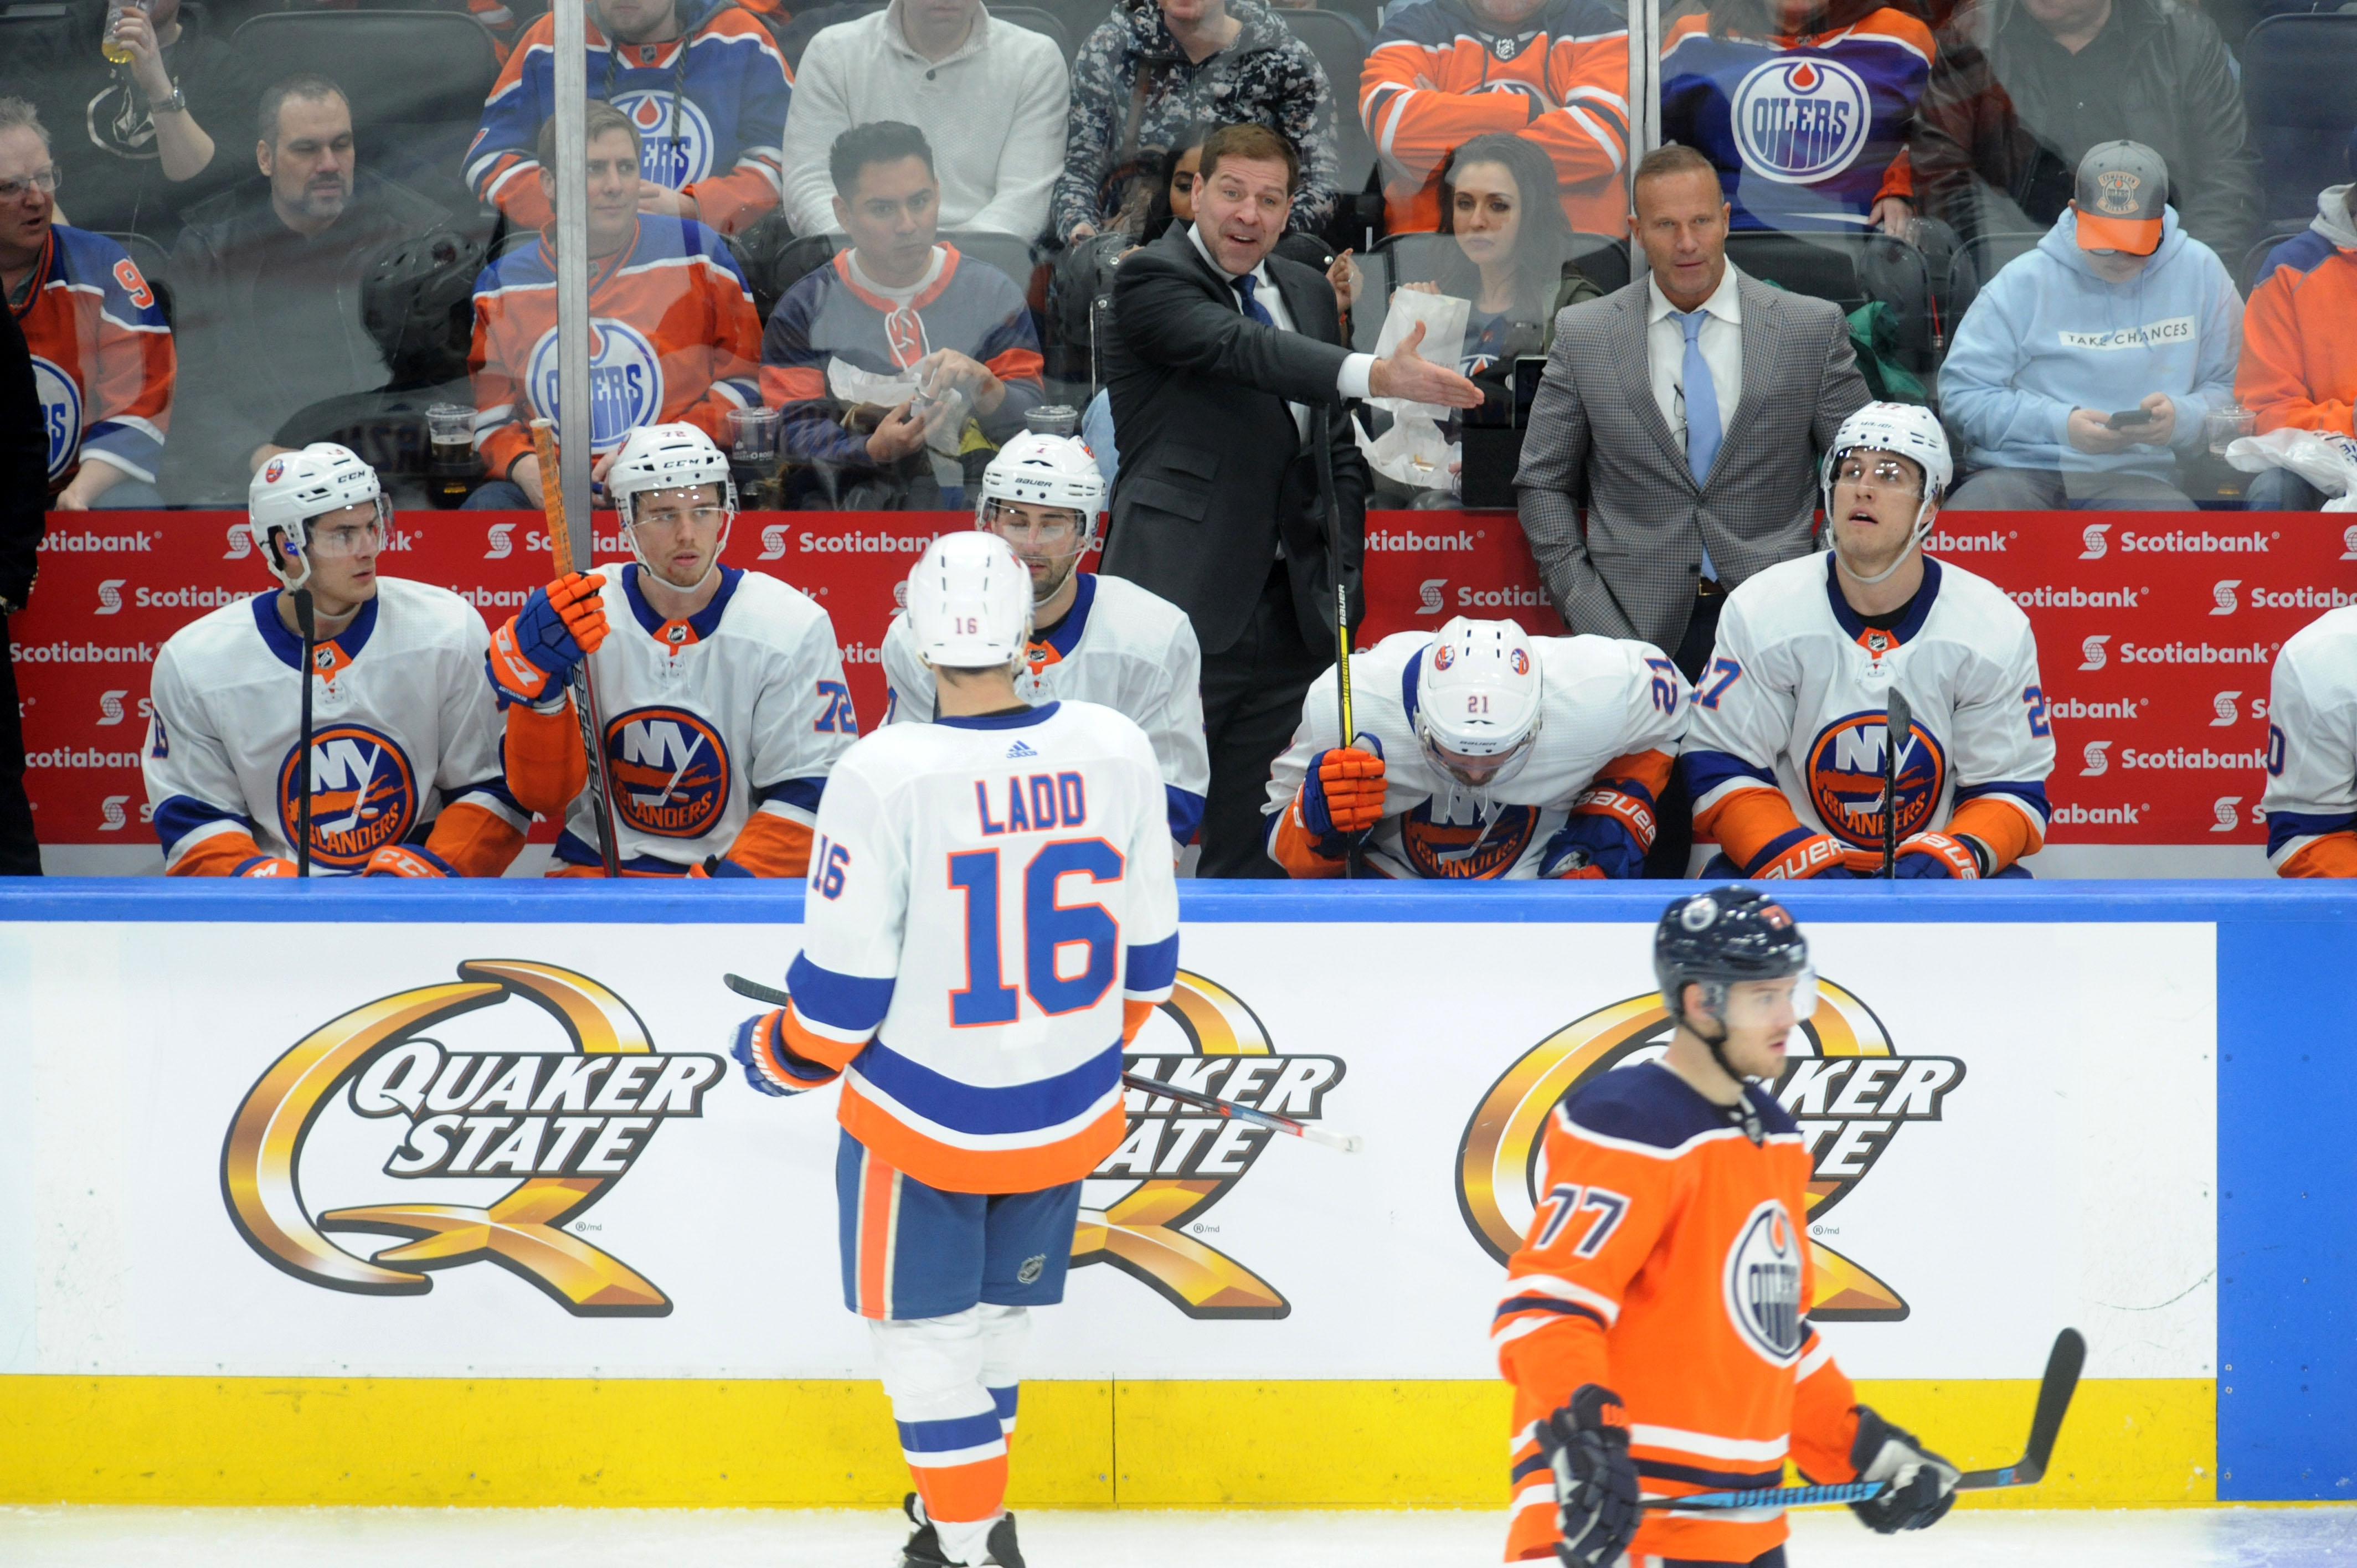 Mar 8, 2018; Edmonton, Alberta, CAN; New York Islanders Head Coach Doug Weight is seen on the players bench as they played the Edmonton Oilers during the third period at Rogers Place. Oilers won in a shootout 2-1. Mandatory Credit: Walter Tychnowicz-USA TODAY Sports